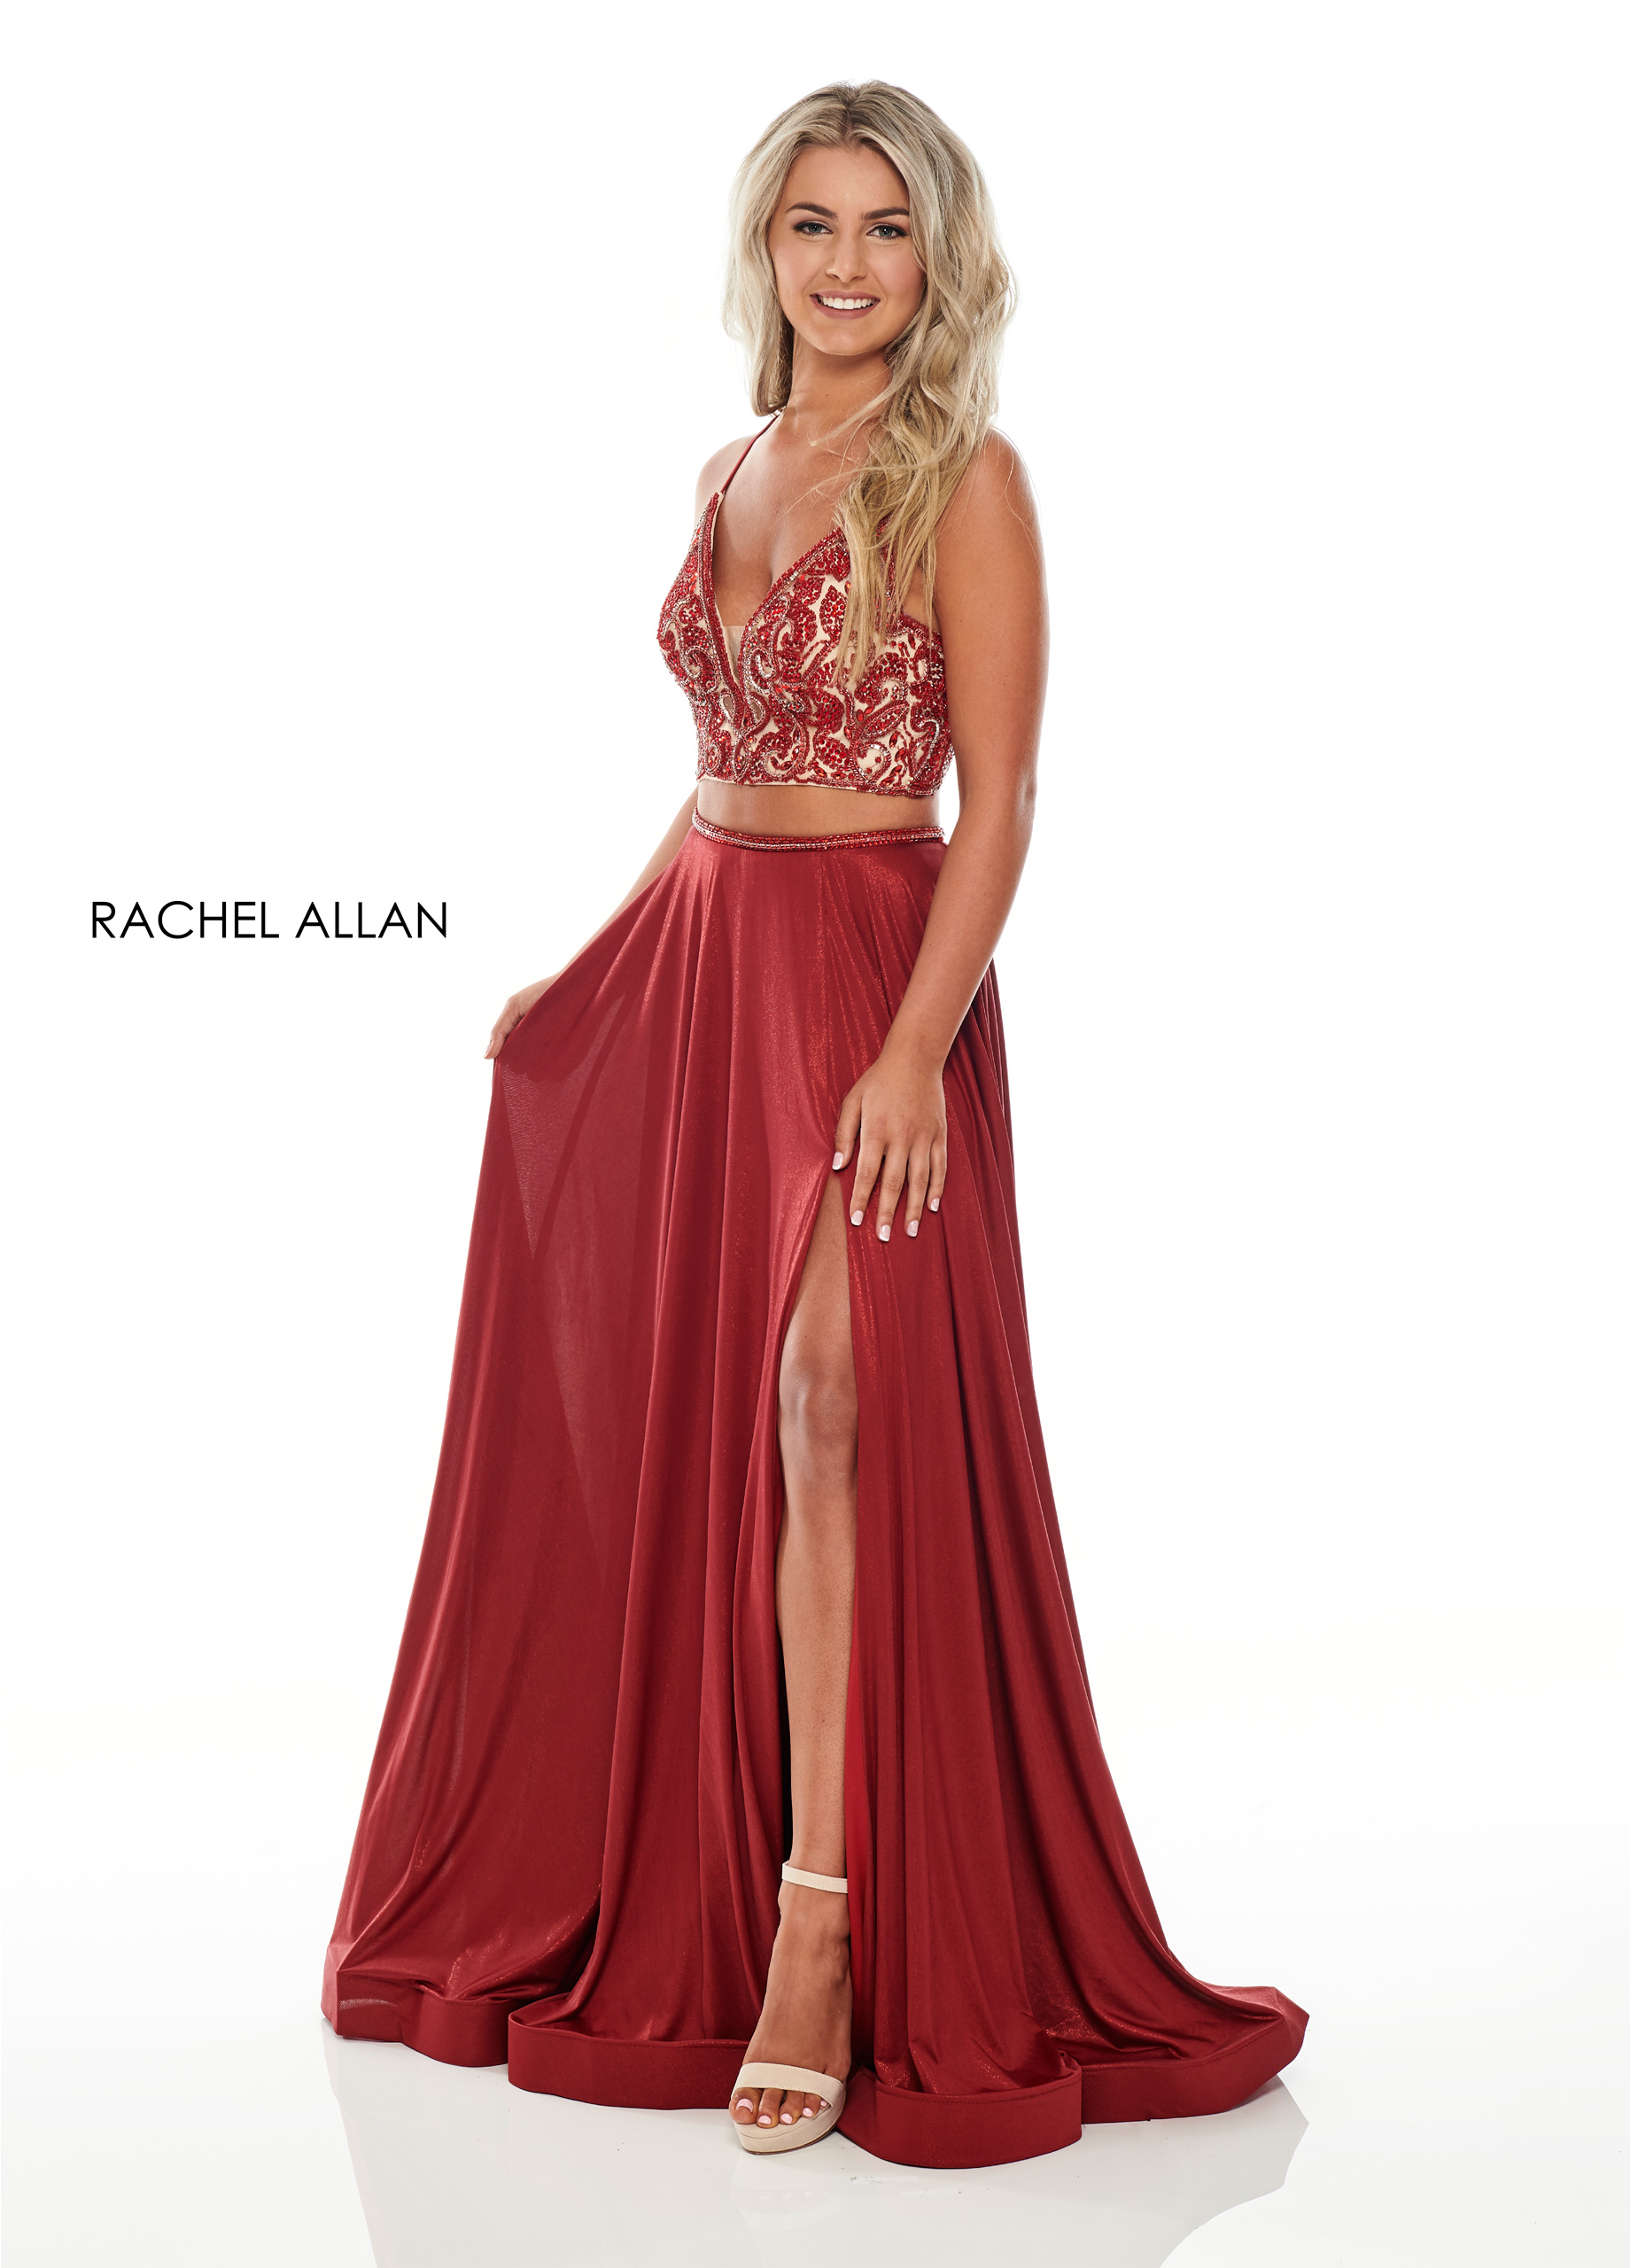 V-Neck Two-Piece Prom Dresses in Red Color